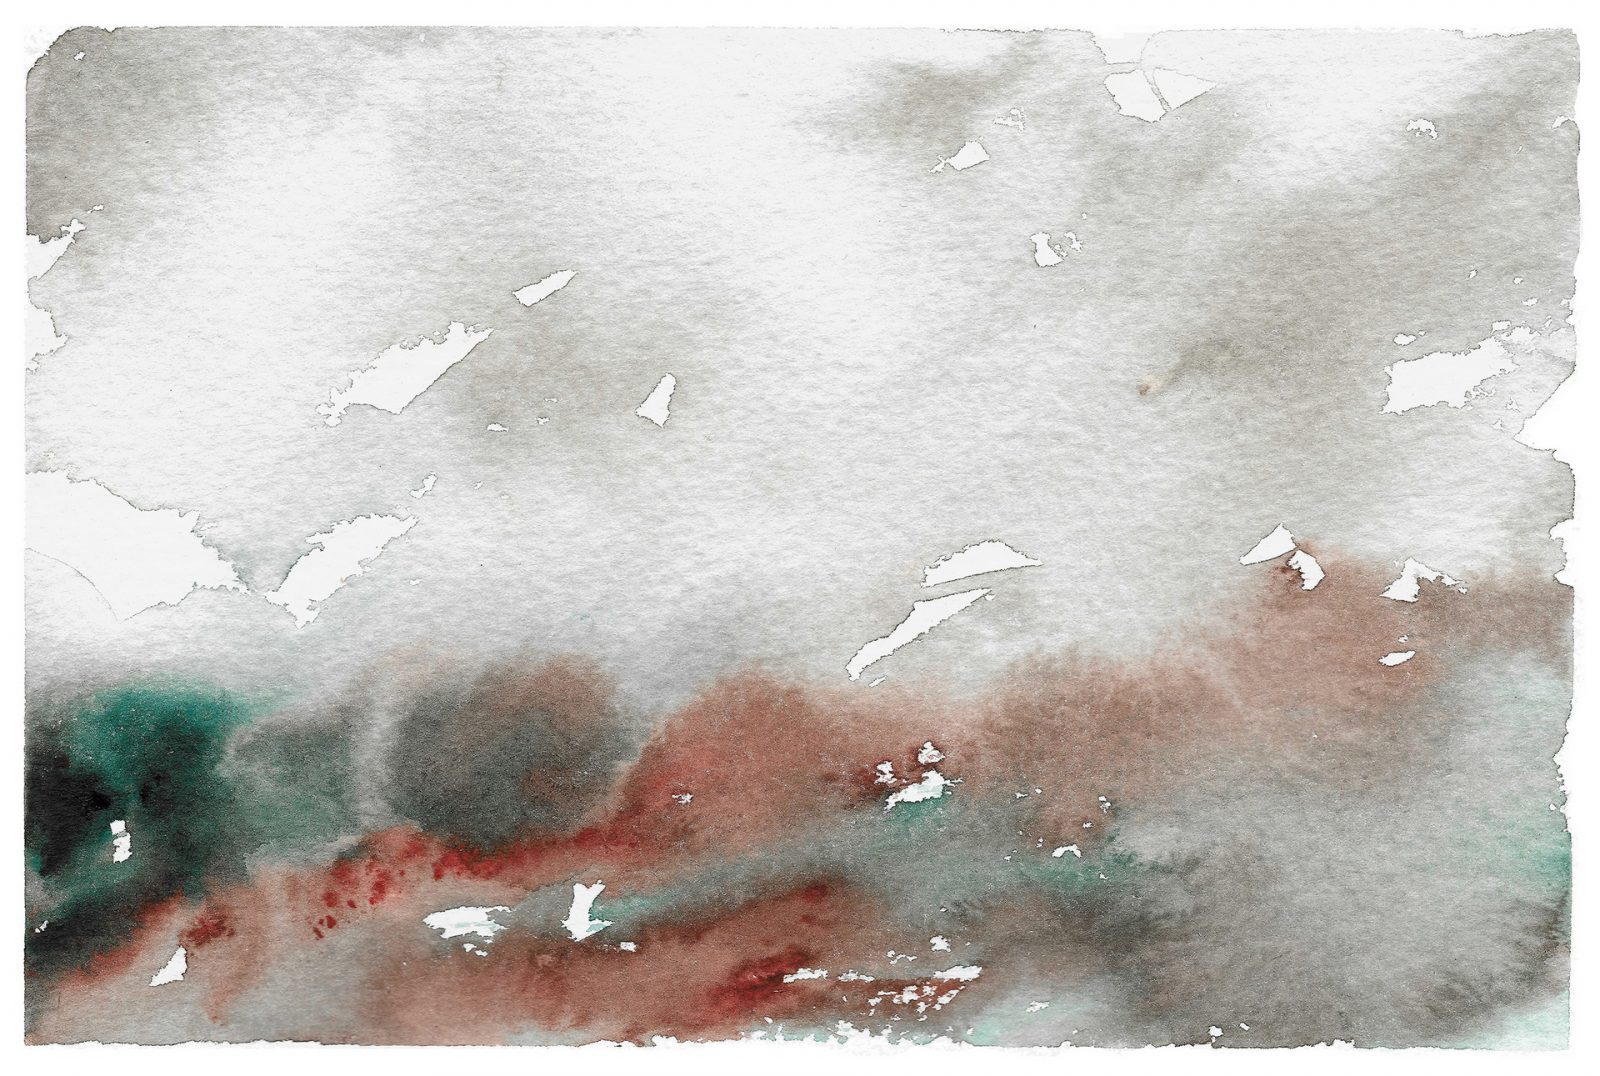 Abstract art, semi abstract landscape in grey, red and turquoise